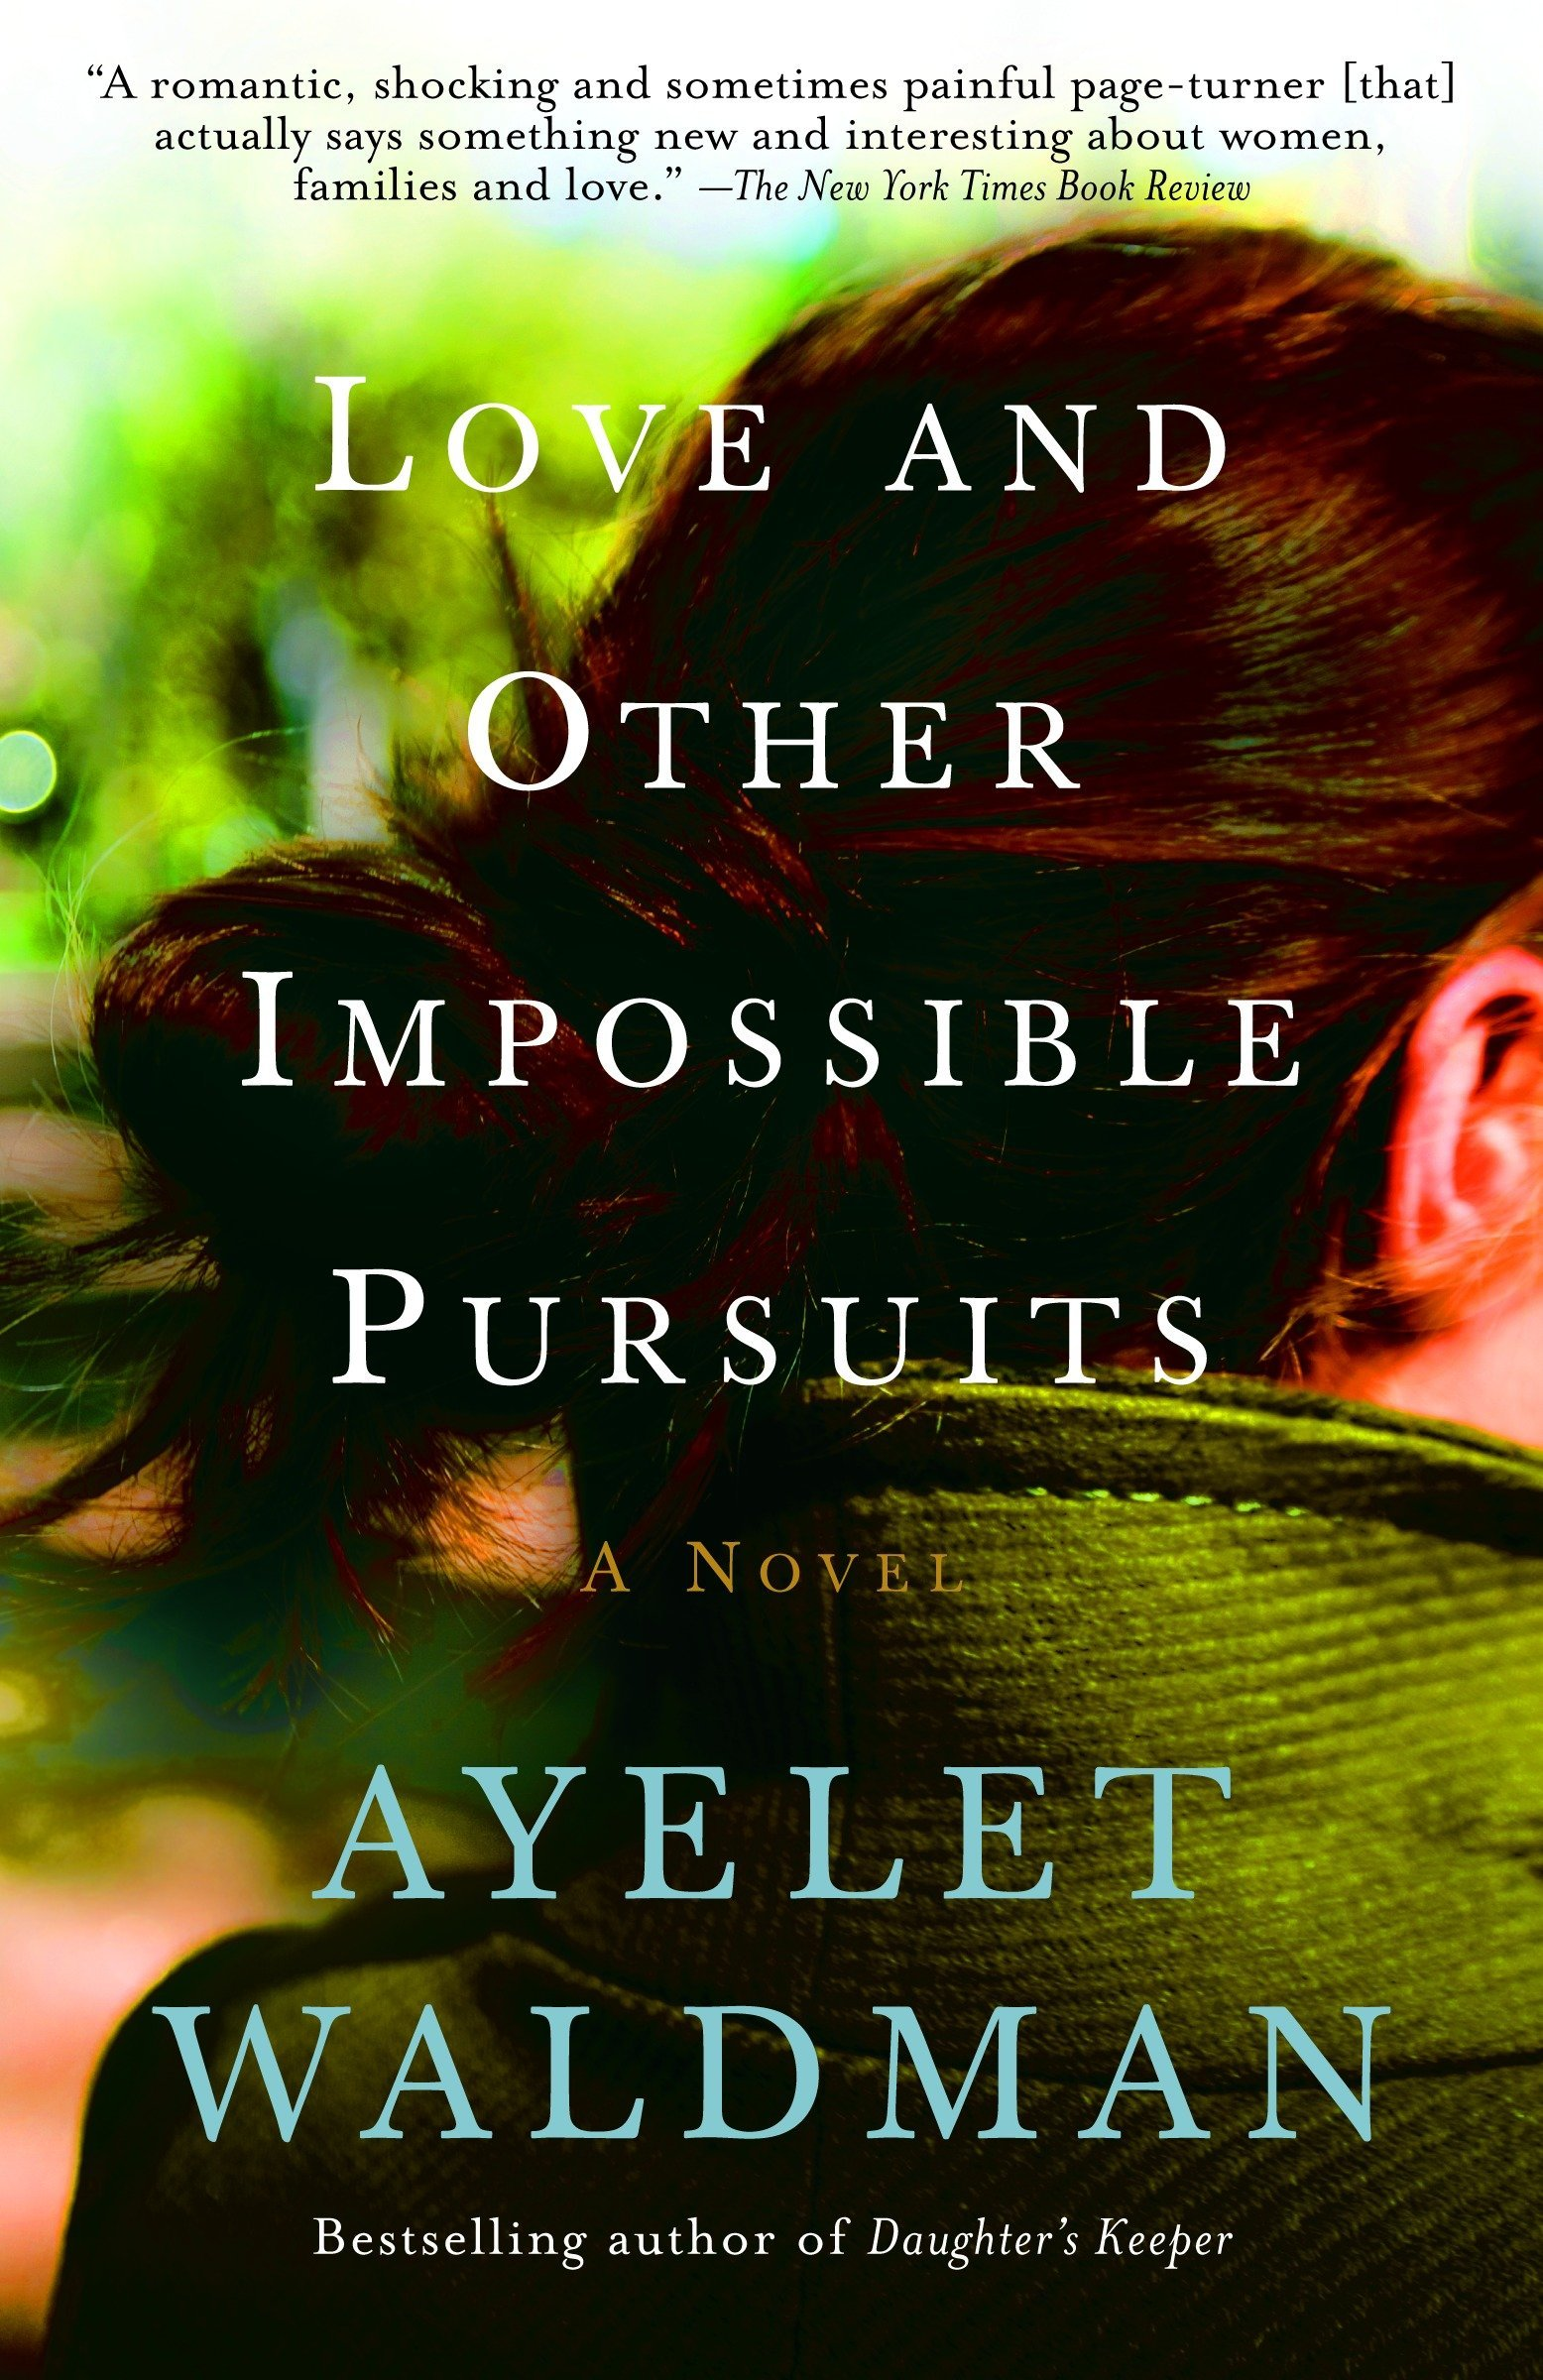 Love and Other Impossible Pursuits: Amazon.es: Ayelet Waldman: Libros en idiomas extranjeros